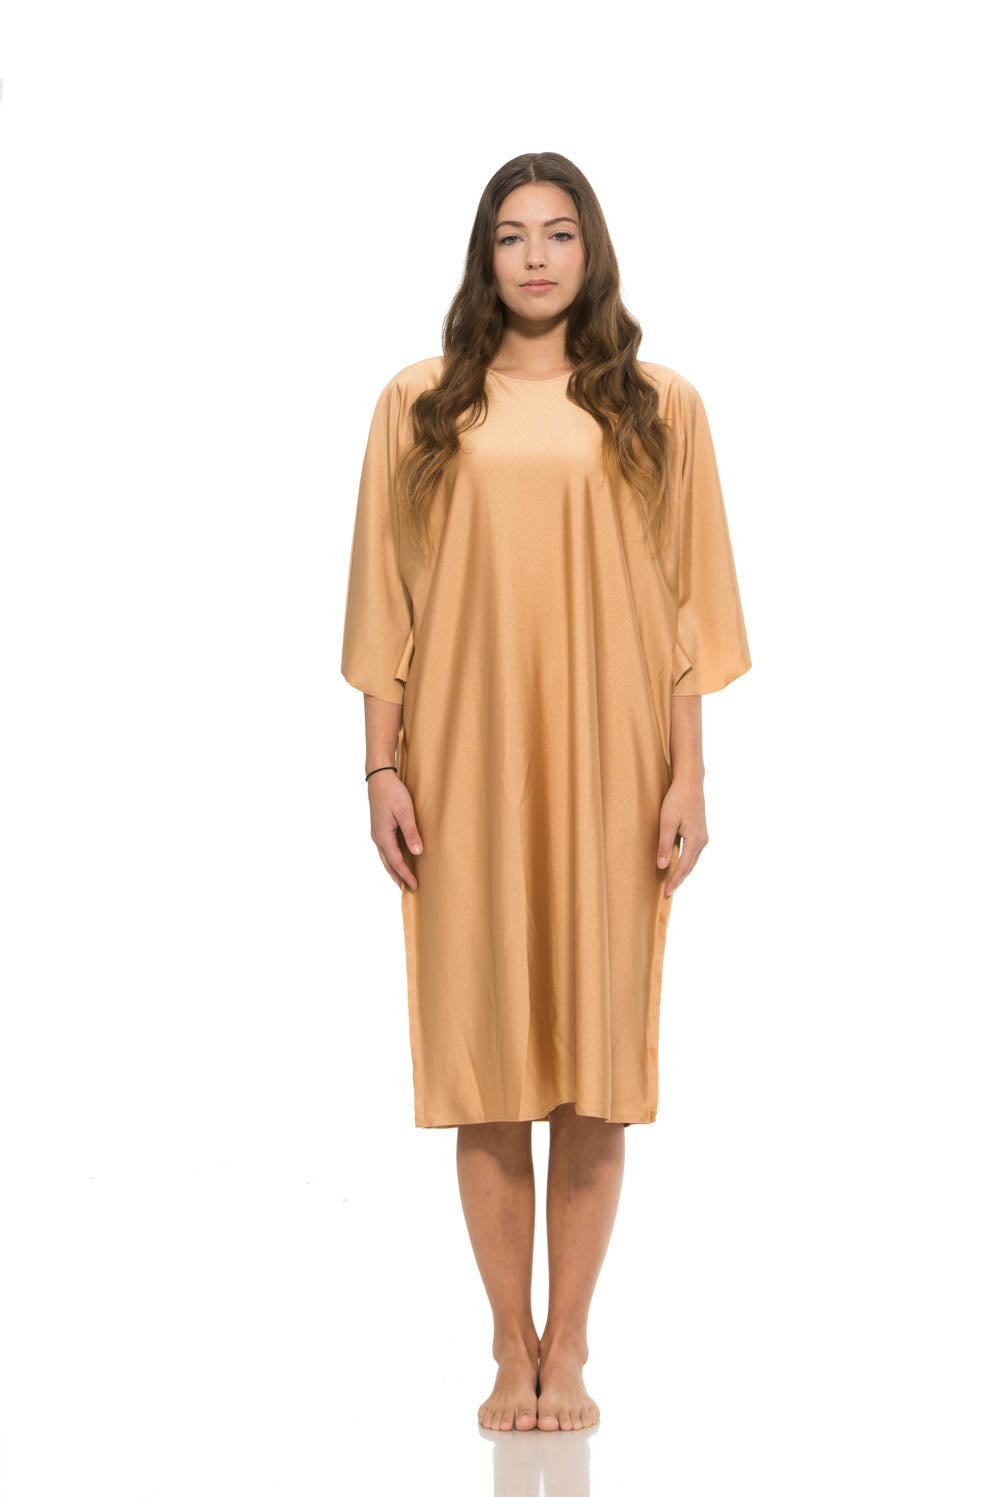 Nitza For Undercover - PEACH Caftan Dress